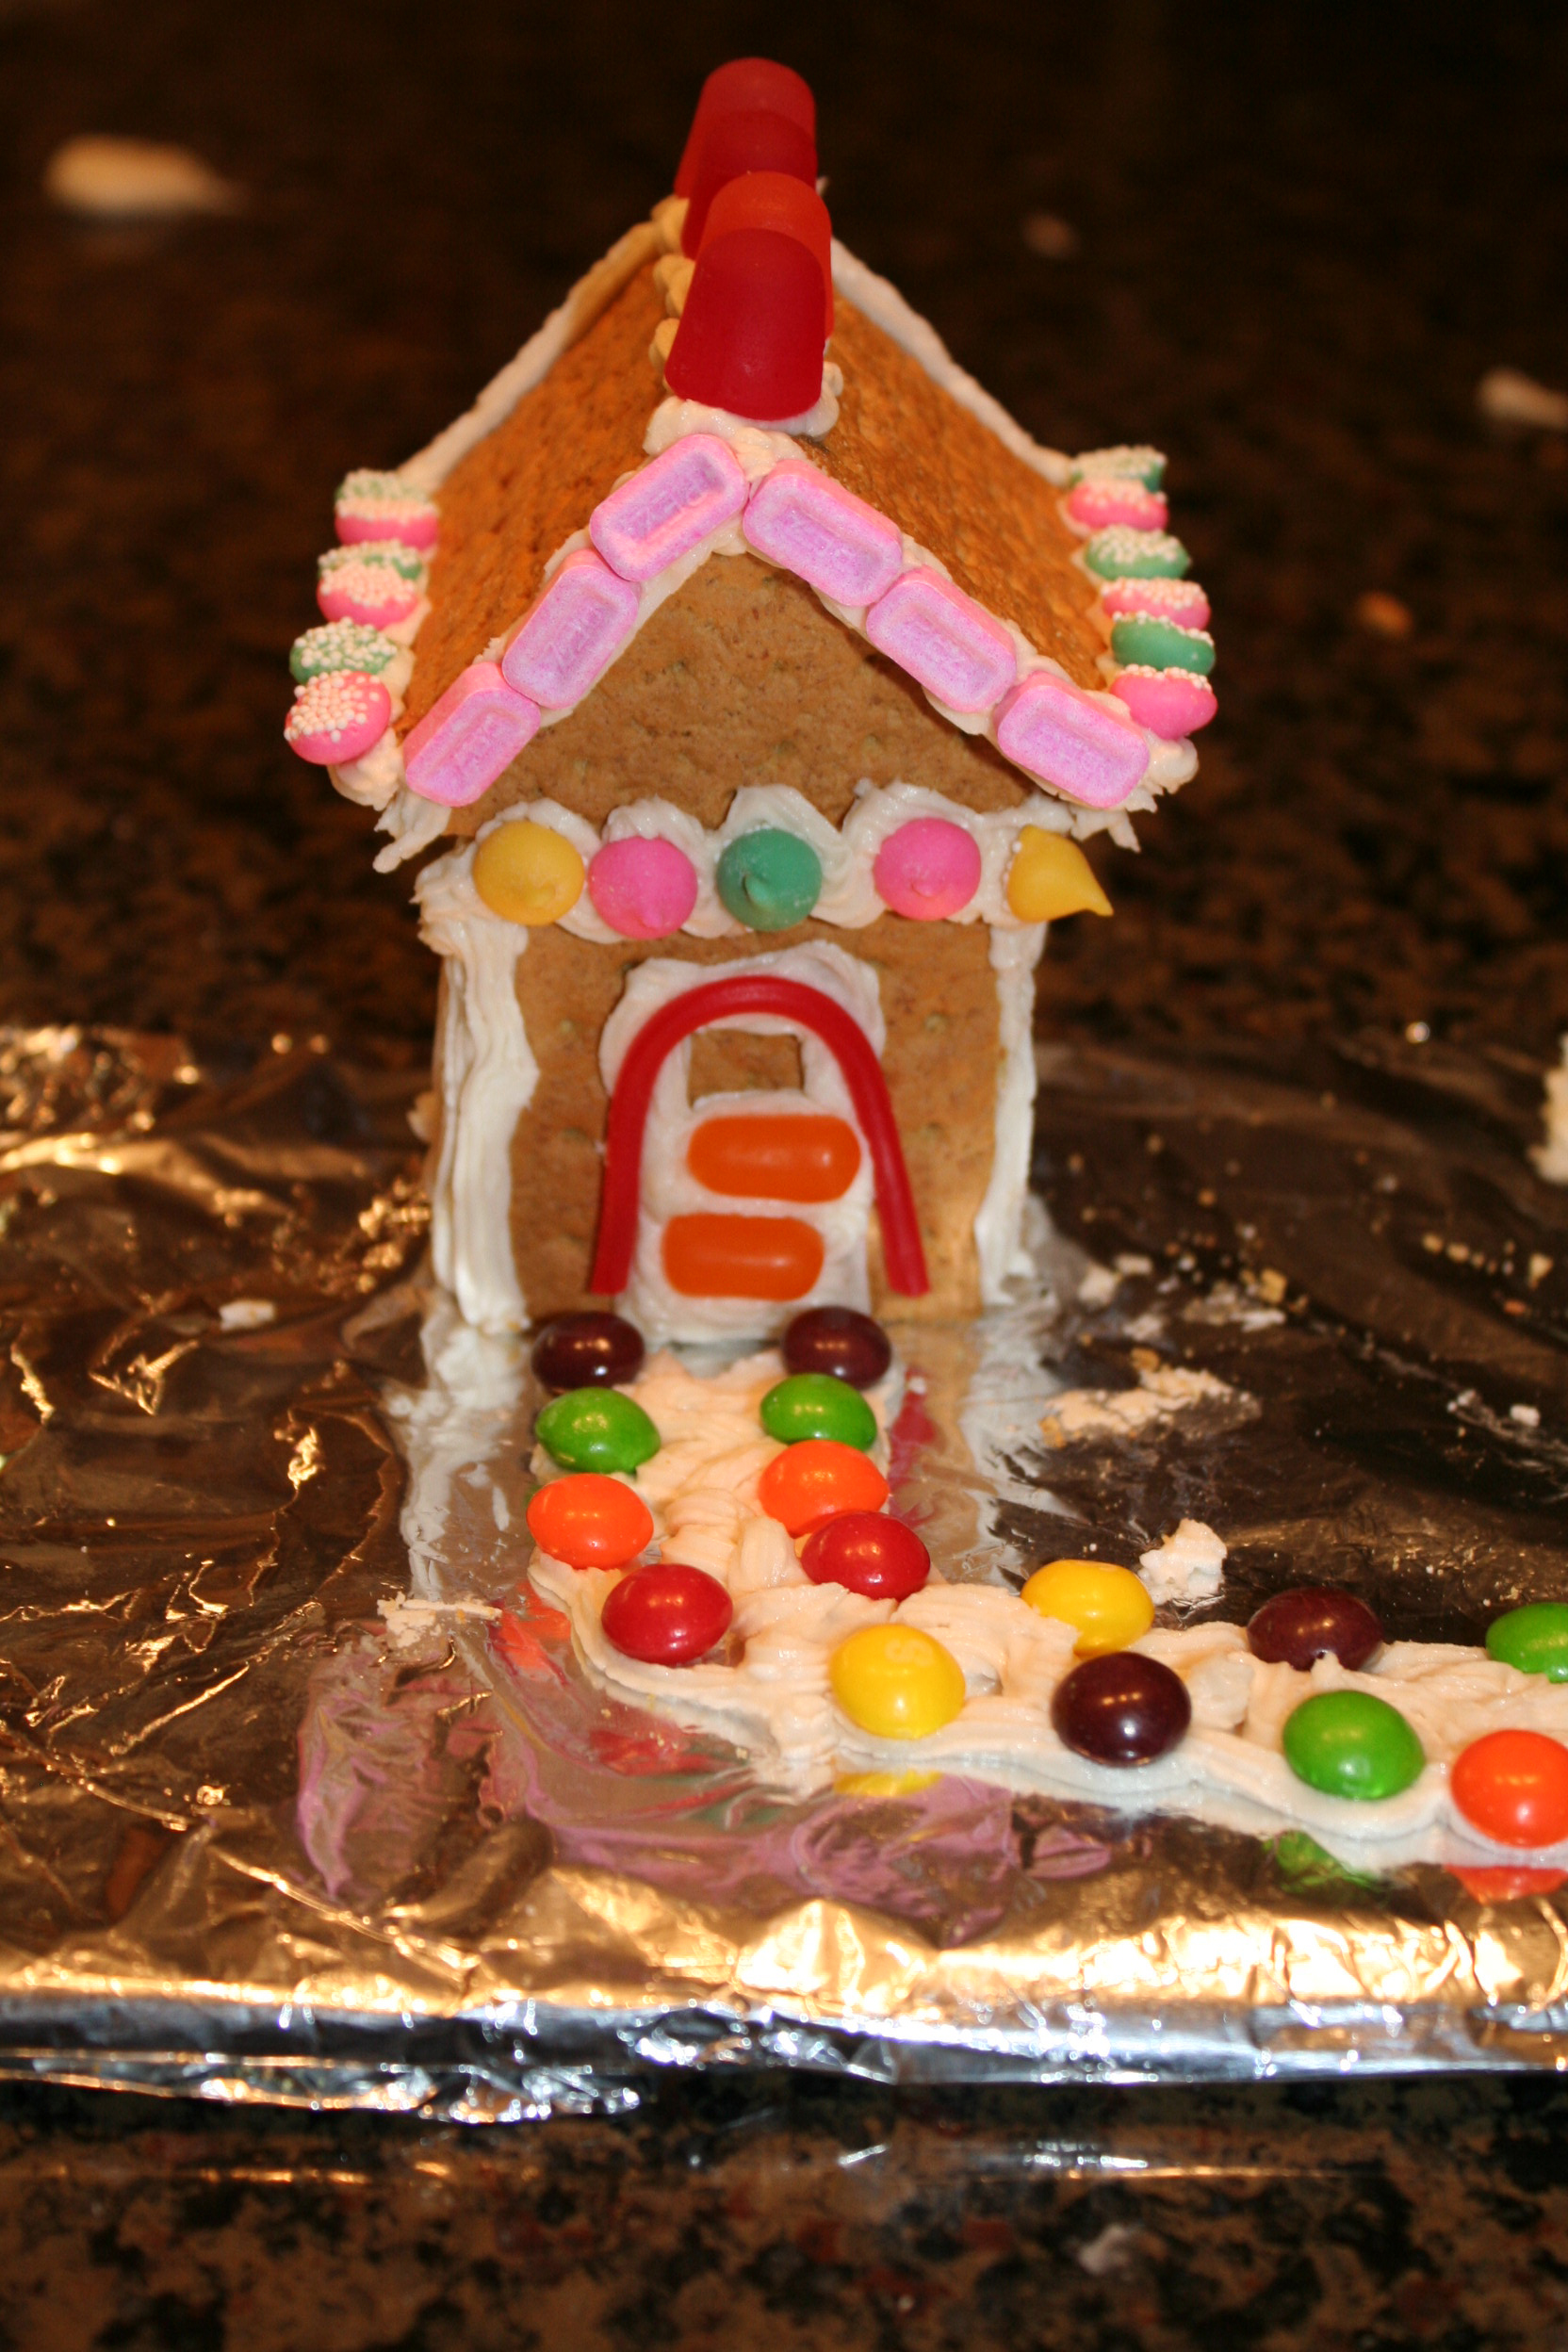 Easy Steps to Build a Gingerbread House with Graham Crackers Posted on Tuesday, November 29, 16 Comments Last week I showed you how to assemble Gingerbread Houses in minutes, but I only showed how to assemble a house with gluten-free crackers.